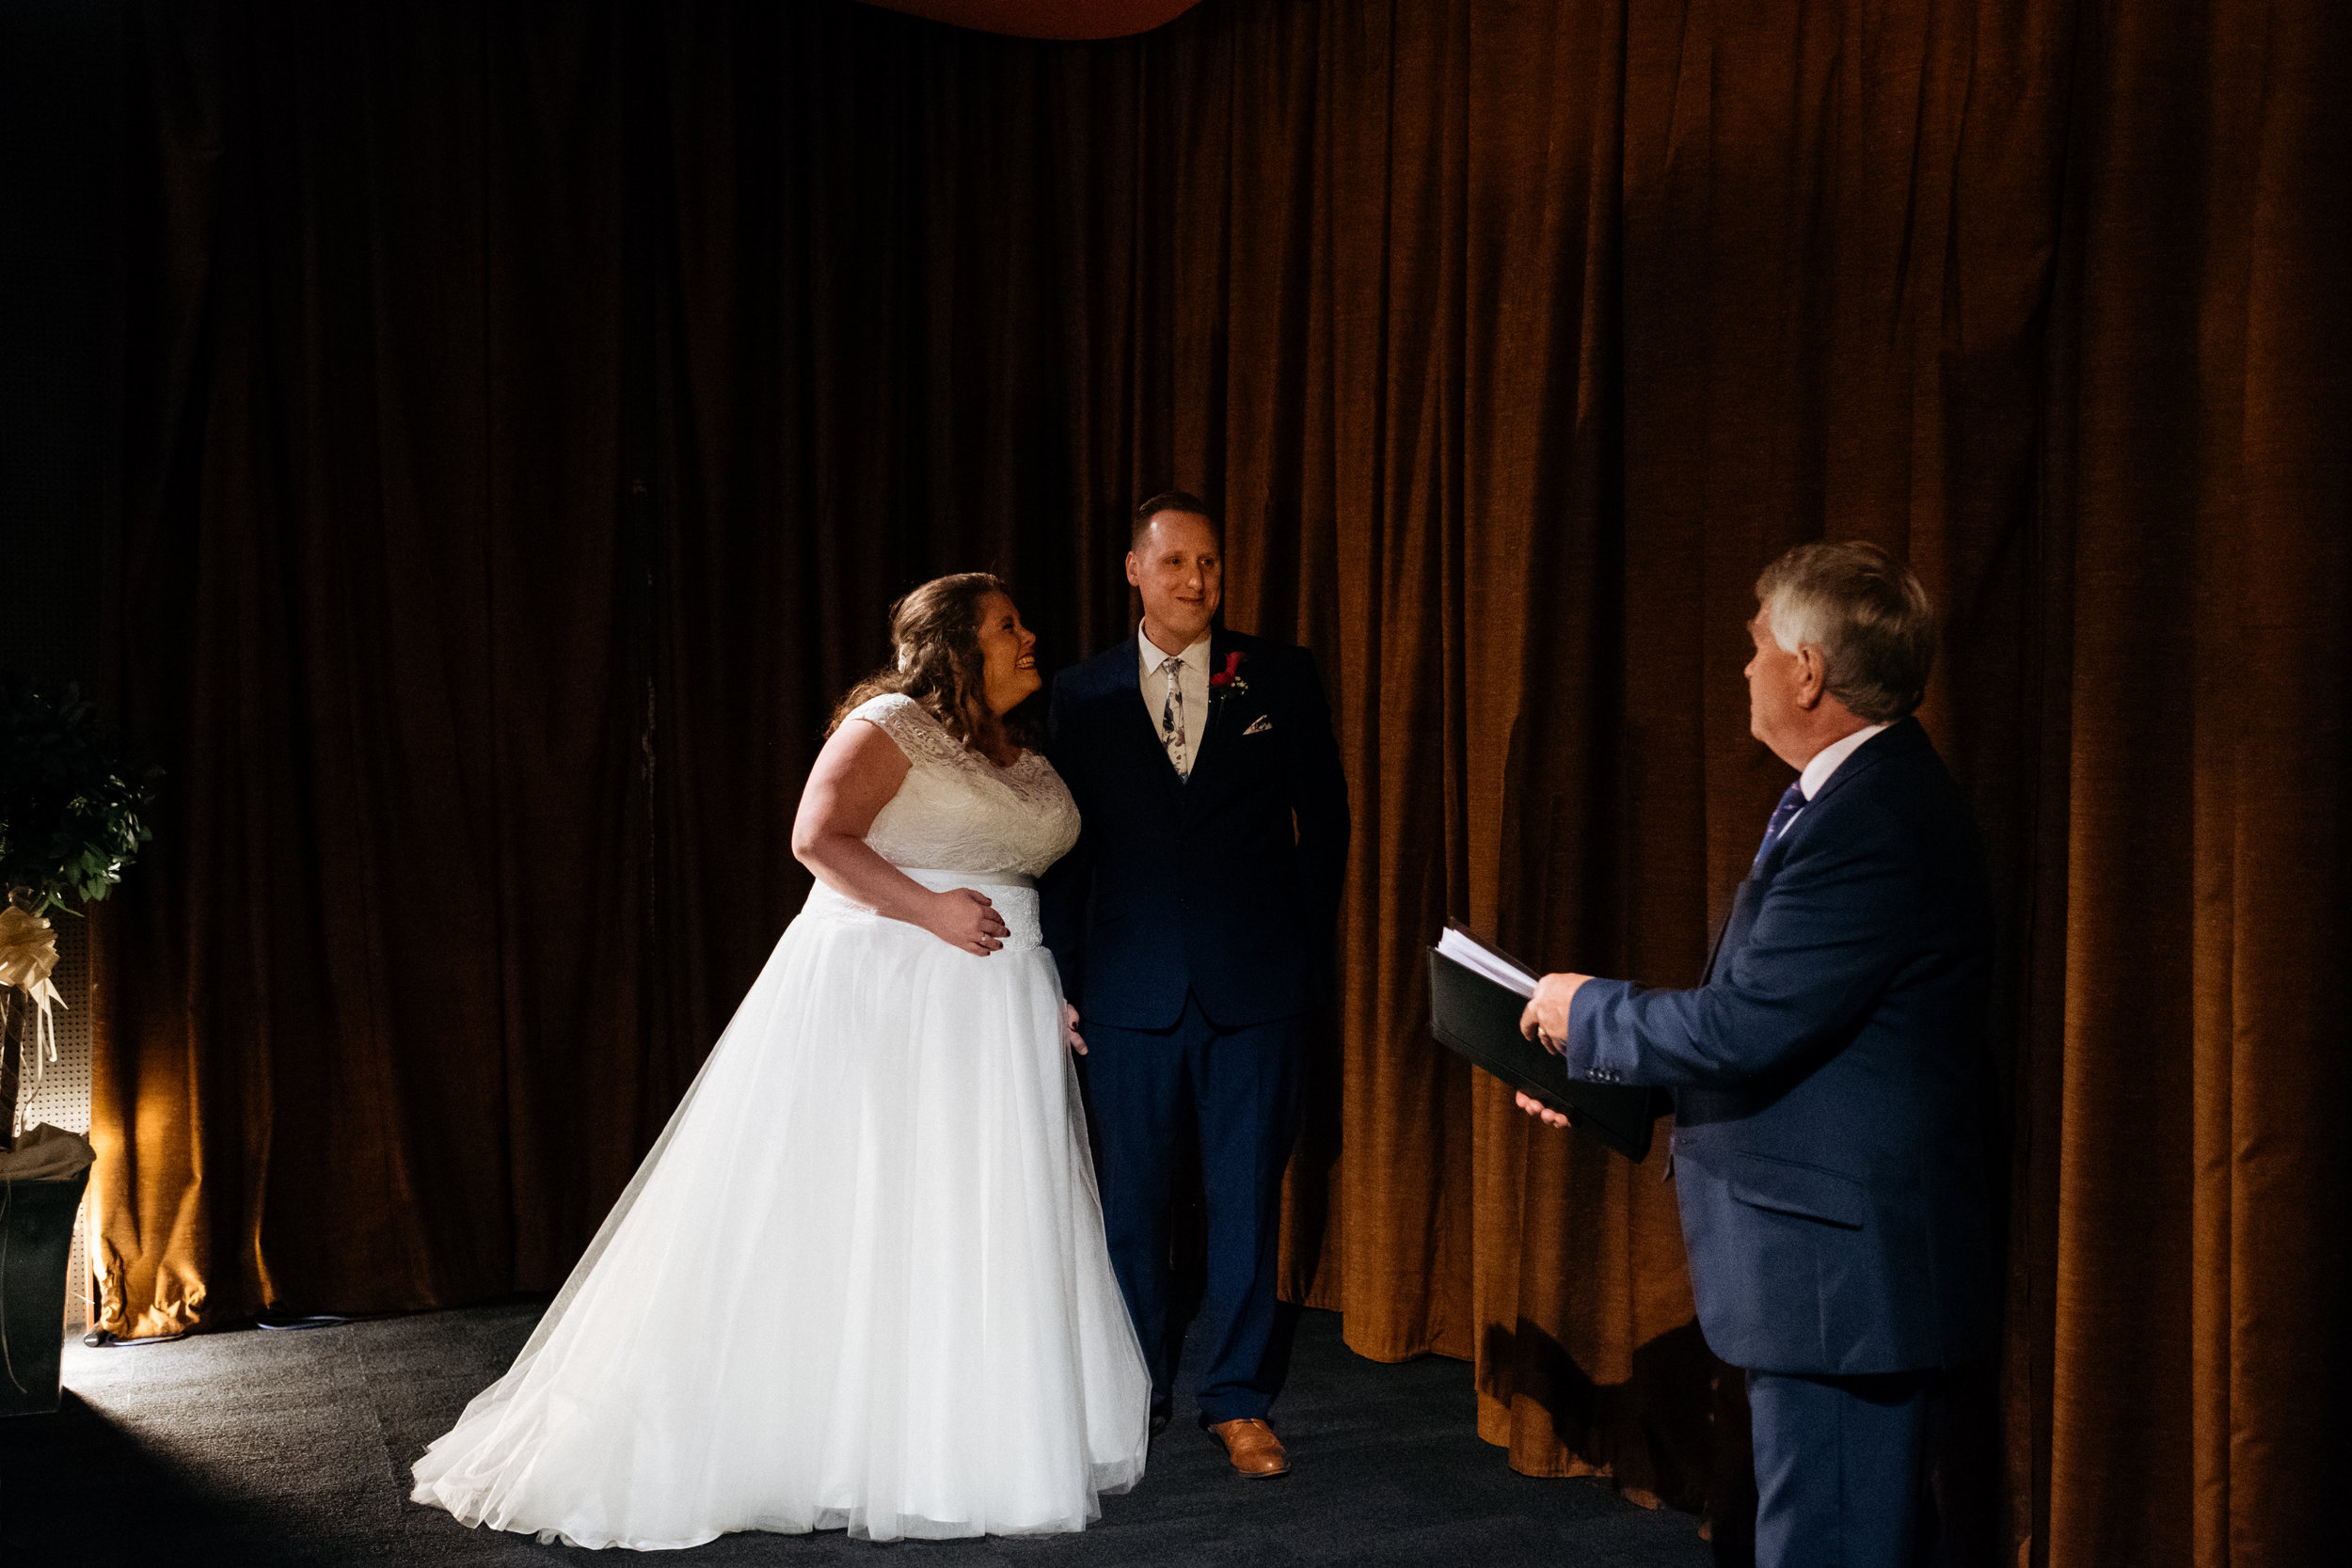 Wedding ceremony at the Little Theatre in Bath